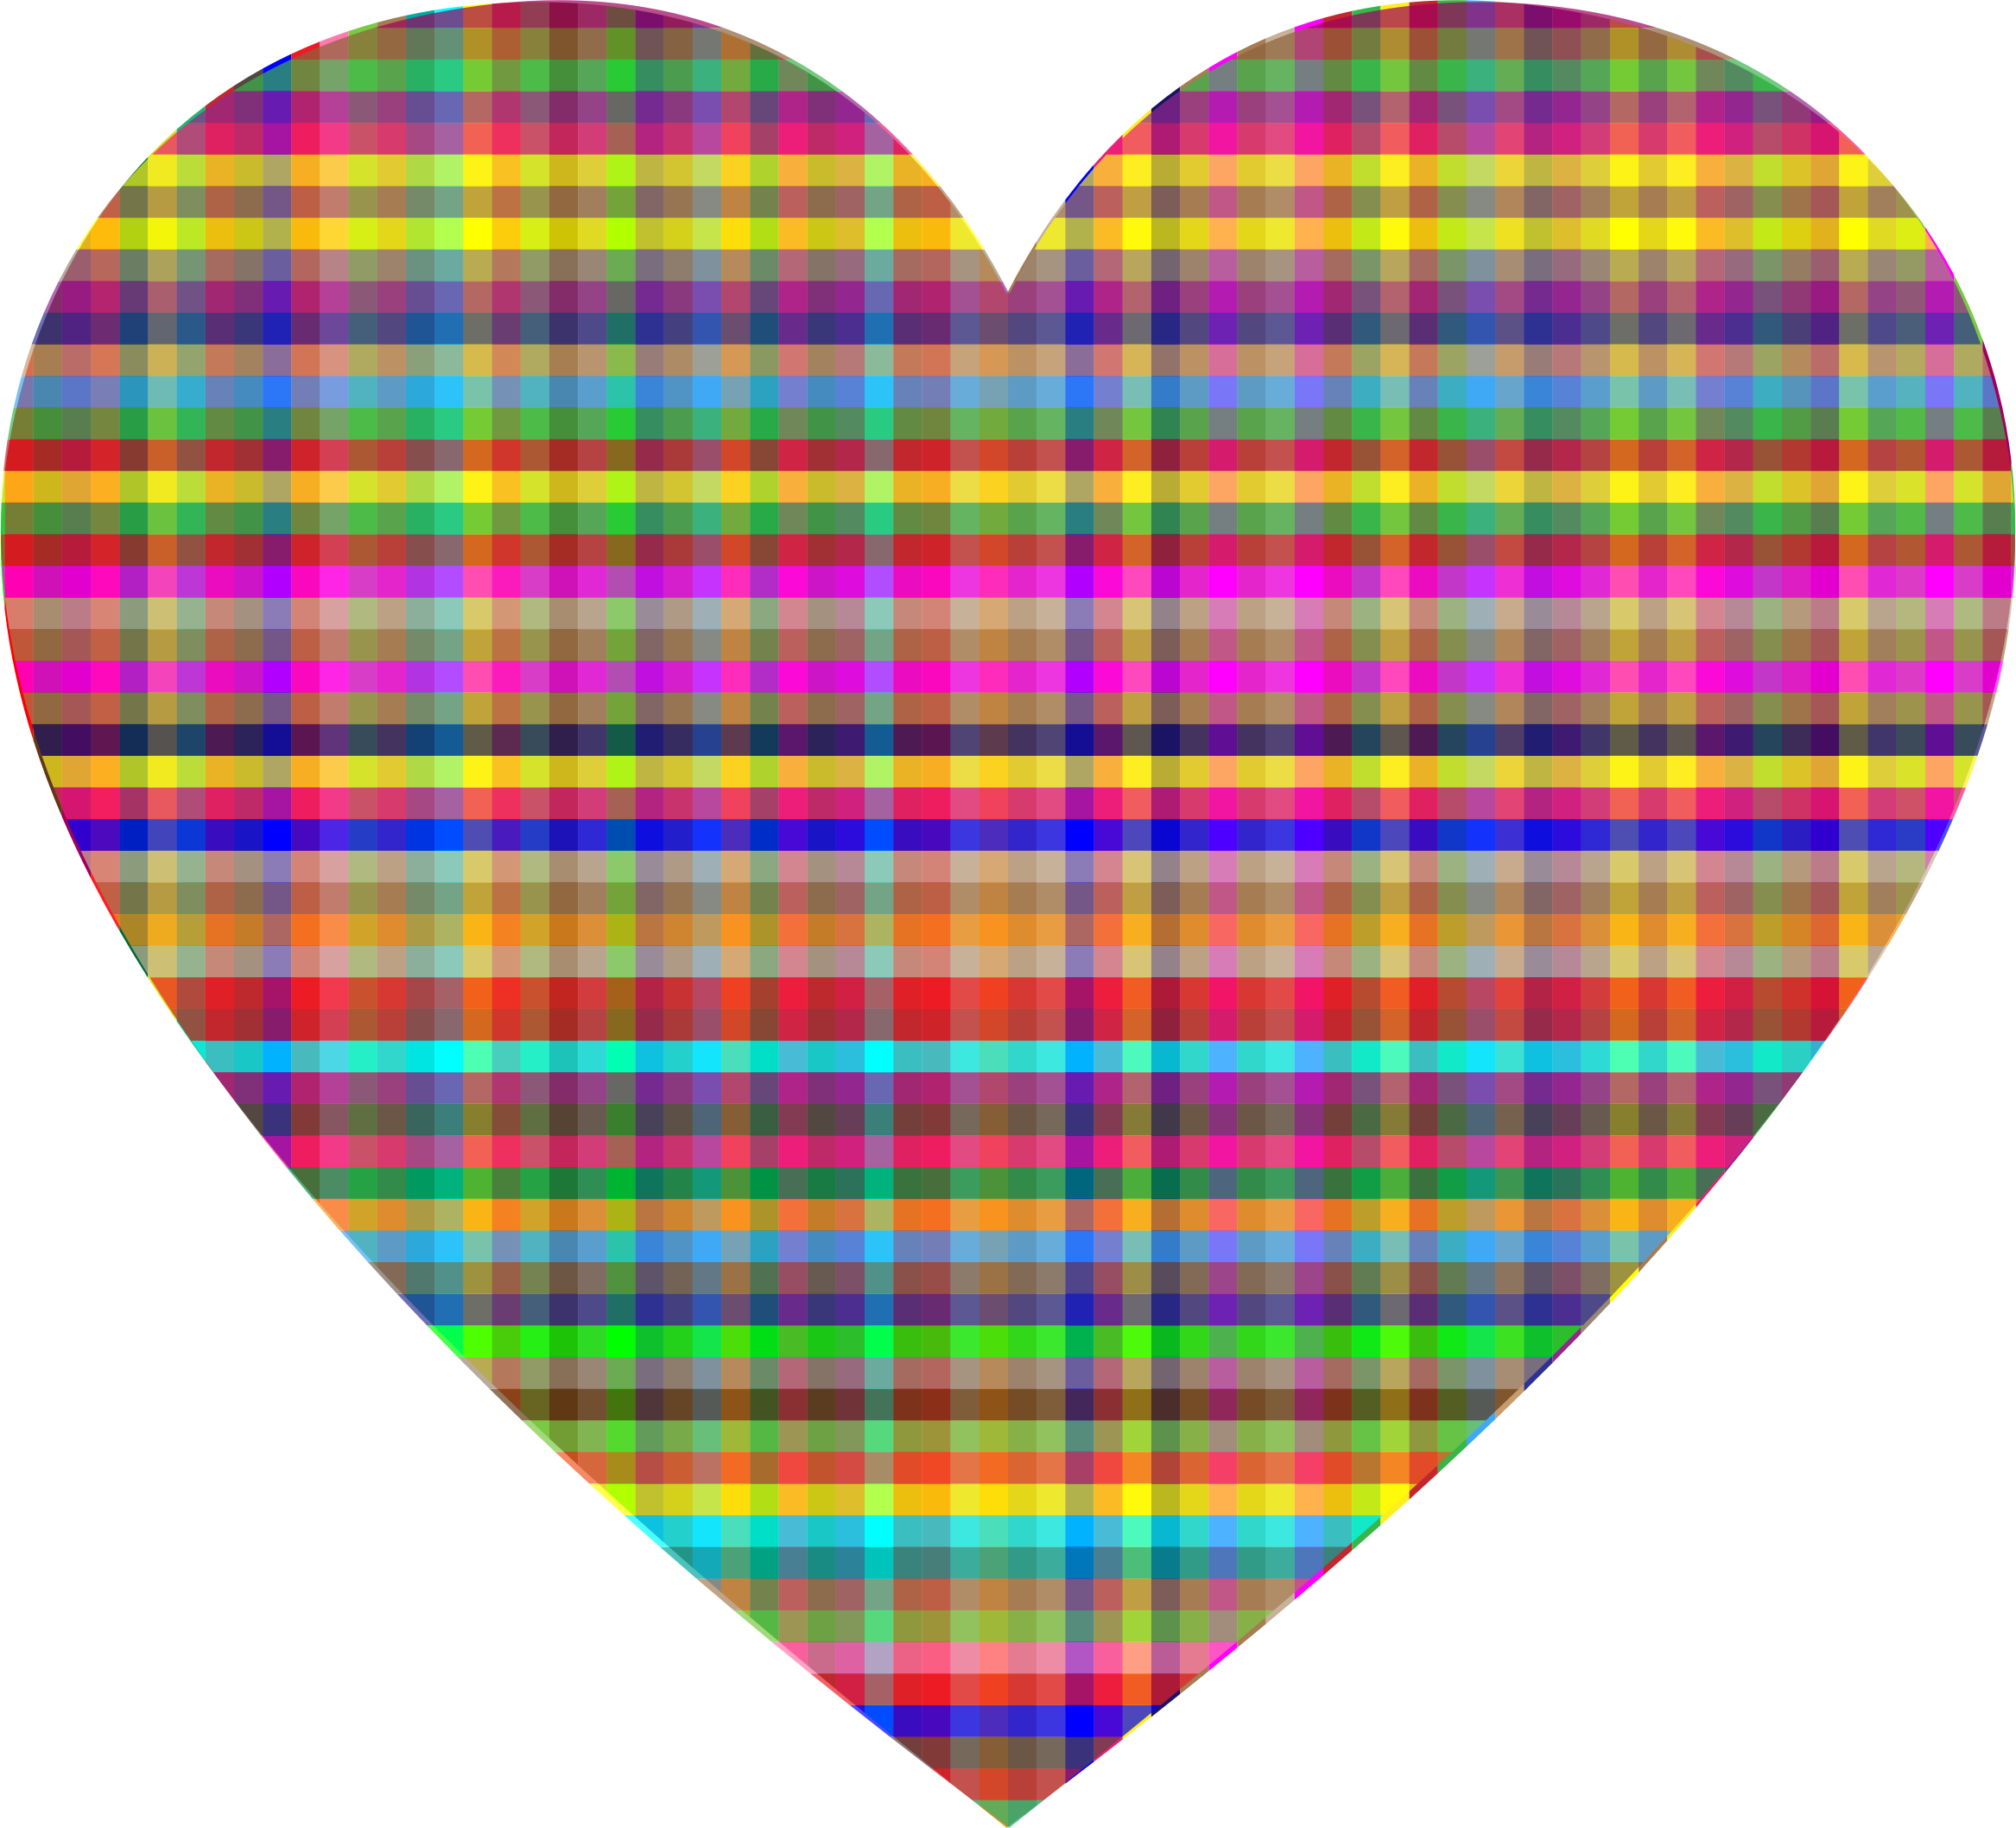 Colorful Checkered Heart by GDJ